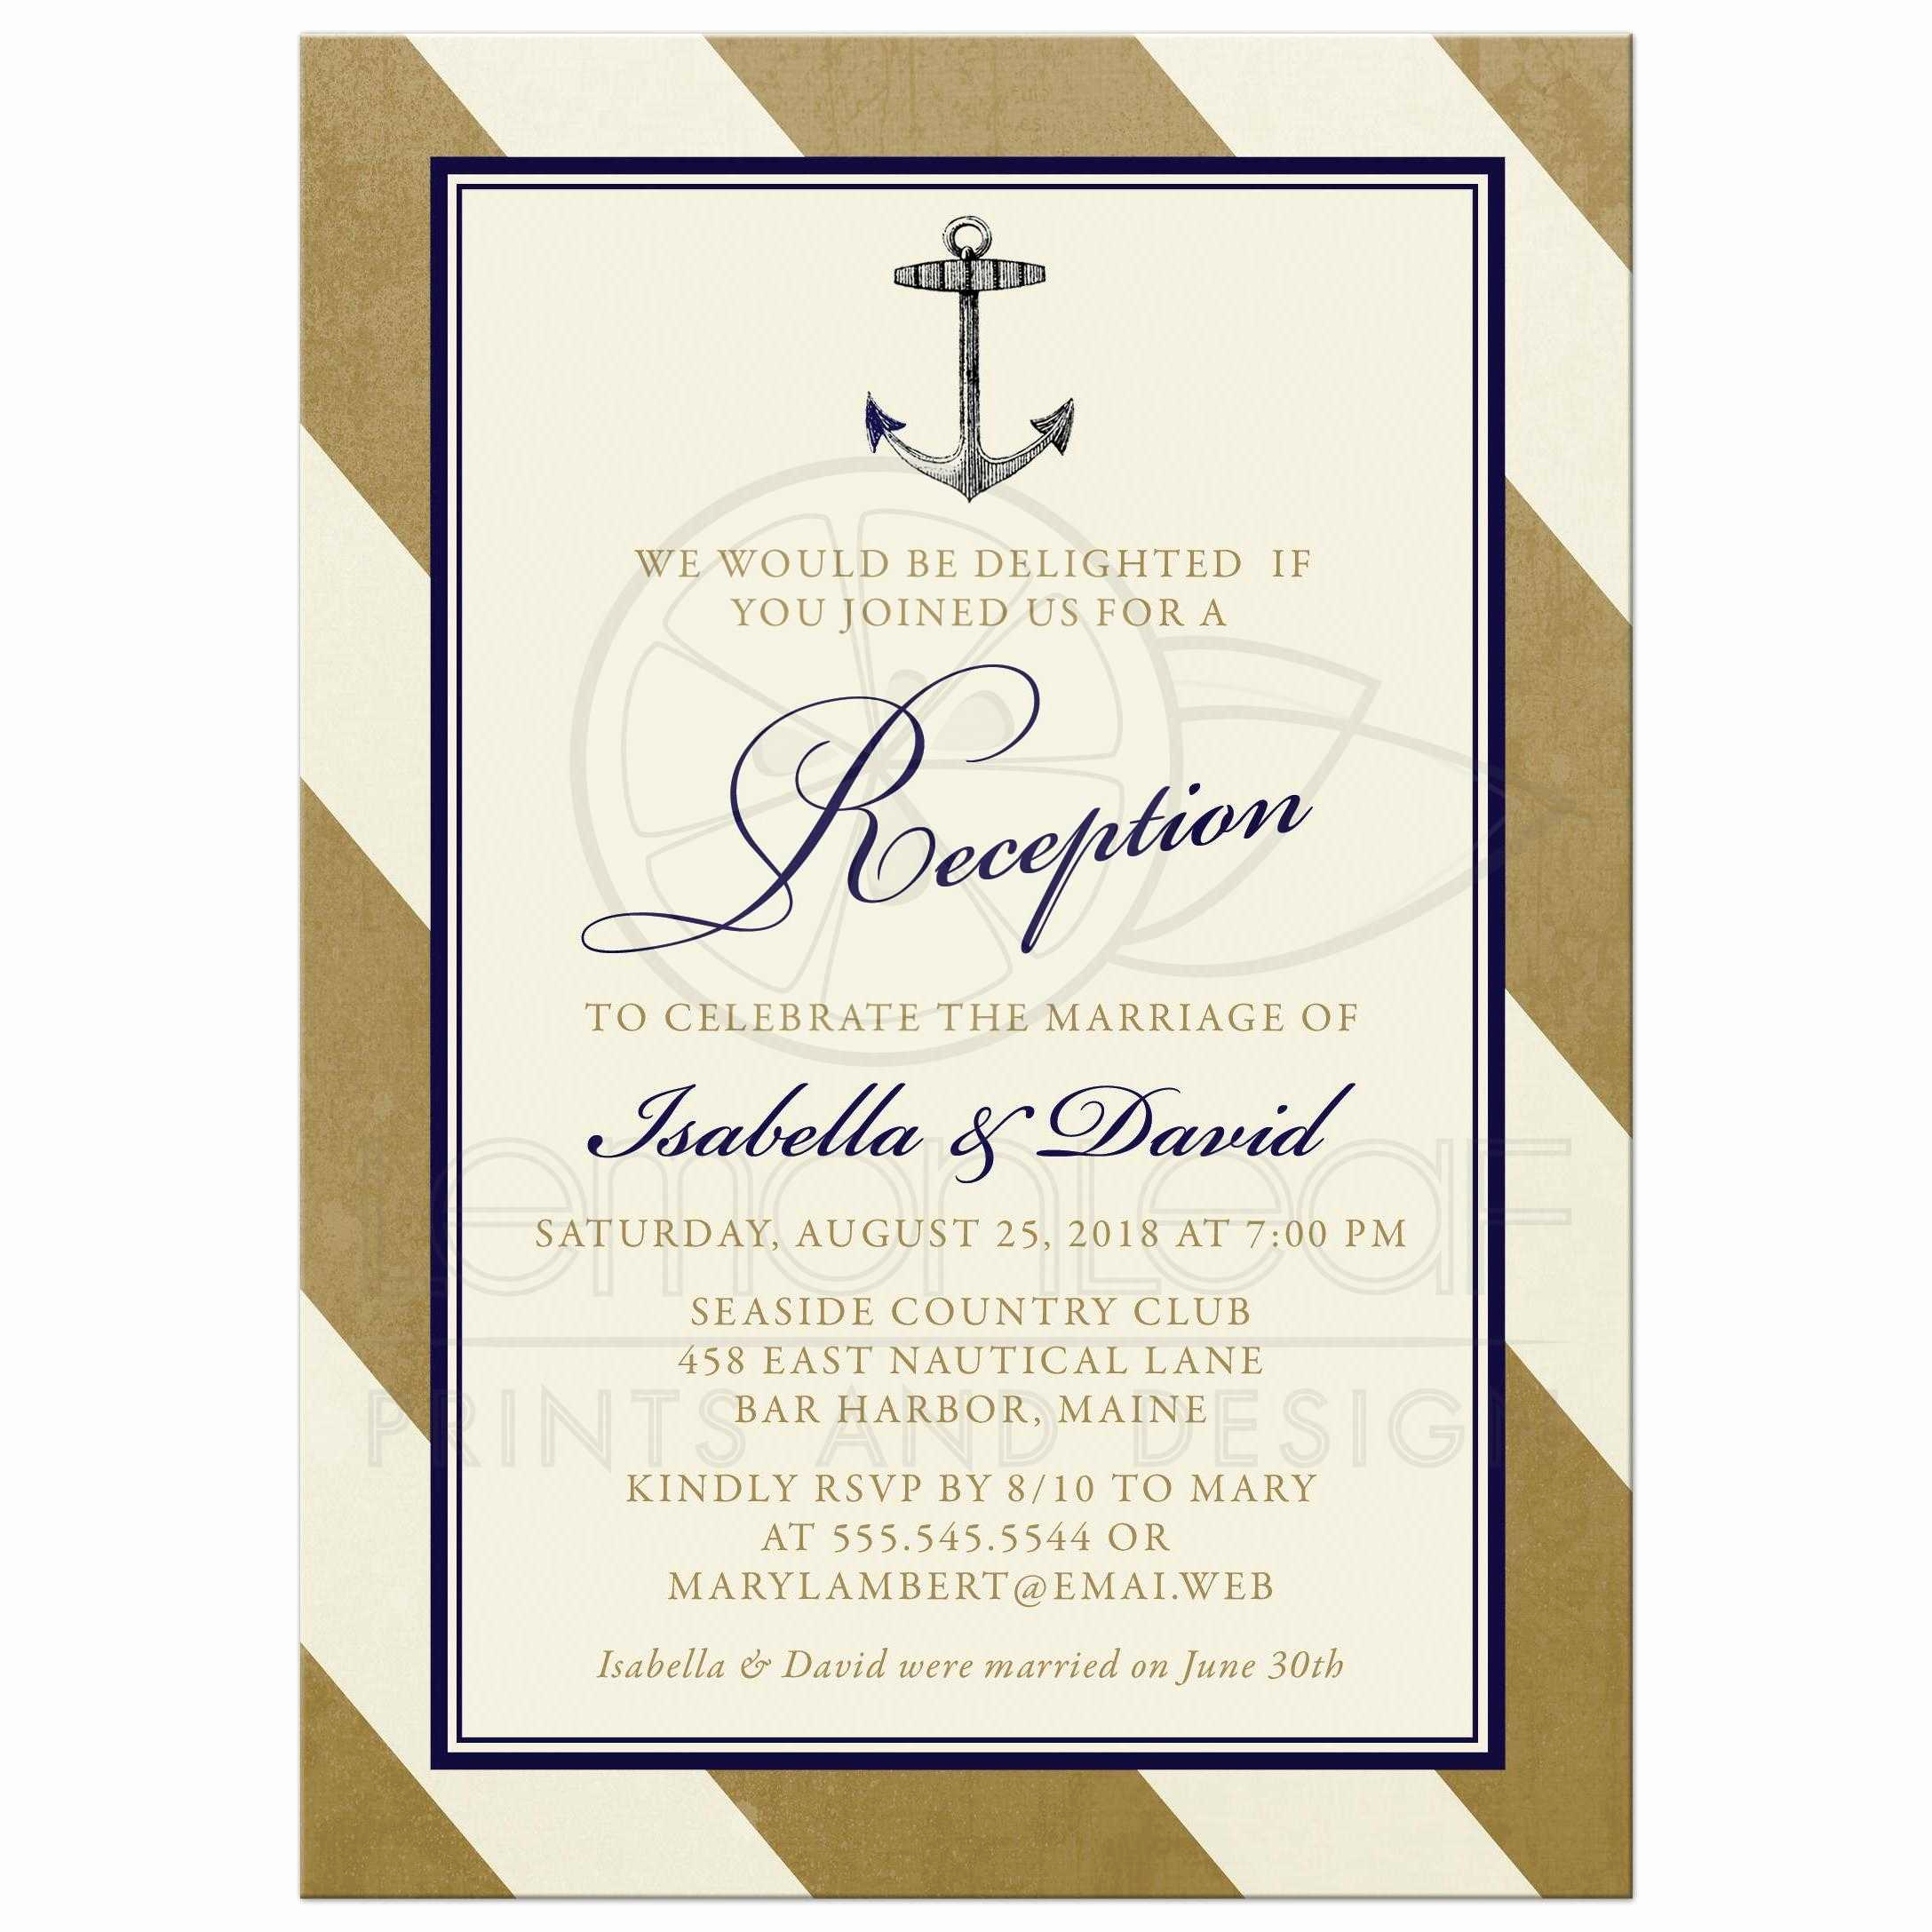 Wedding Reception Invitation Templates Best Of Post Wedding Reception Ly Invitations Elegant Nautical